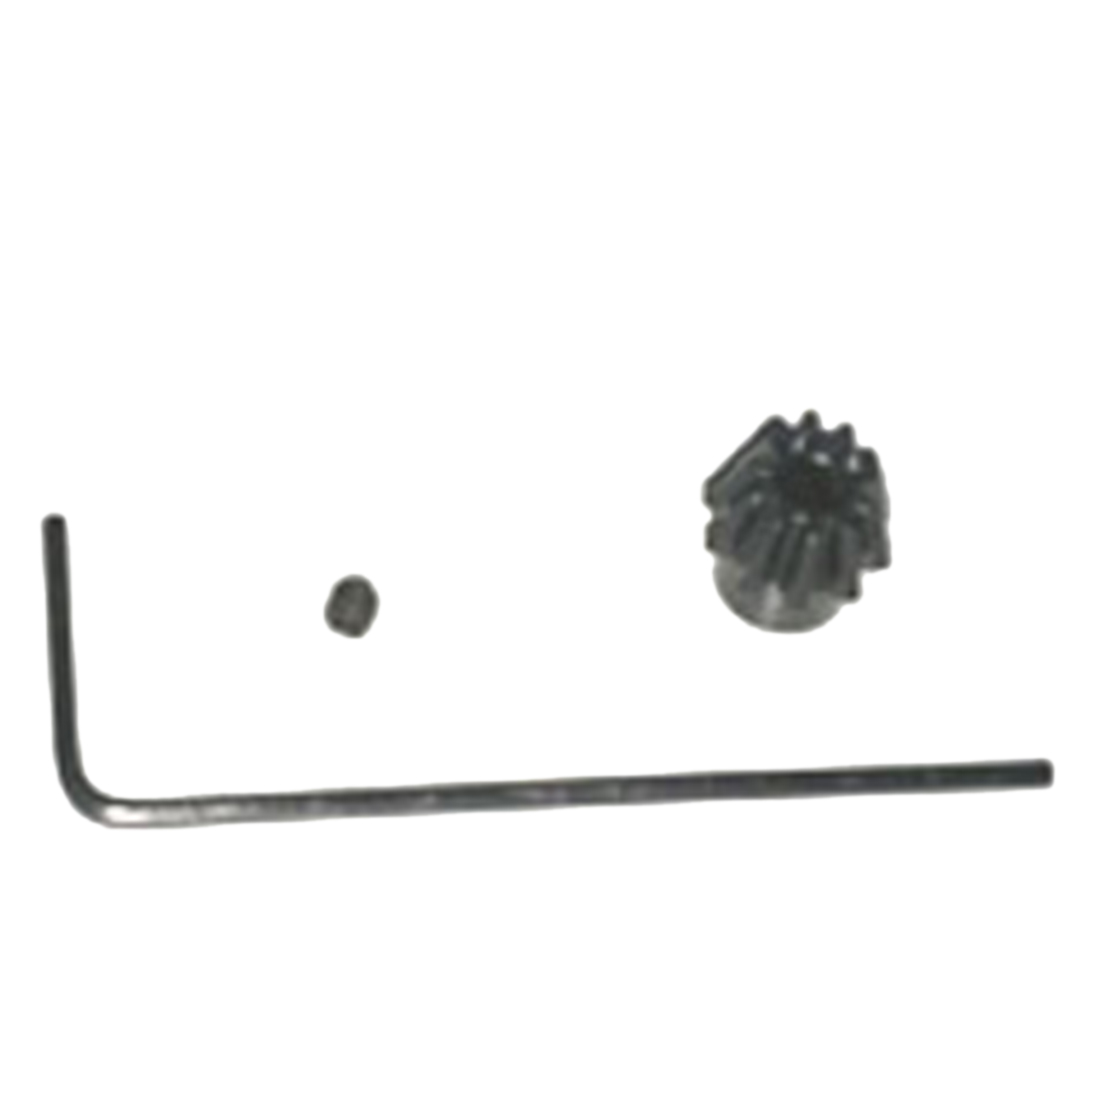 10 Tooth Steel D Shape Motor Gear For JM Gen.8/JM Gen.9 M4A1/FOR LDT HK416 Water Gel Beads Blaster Modification Upgrade